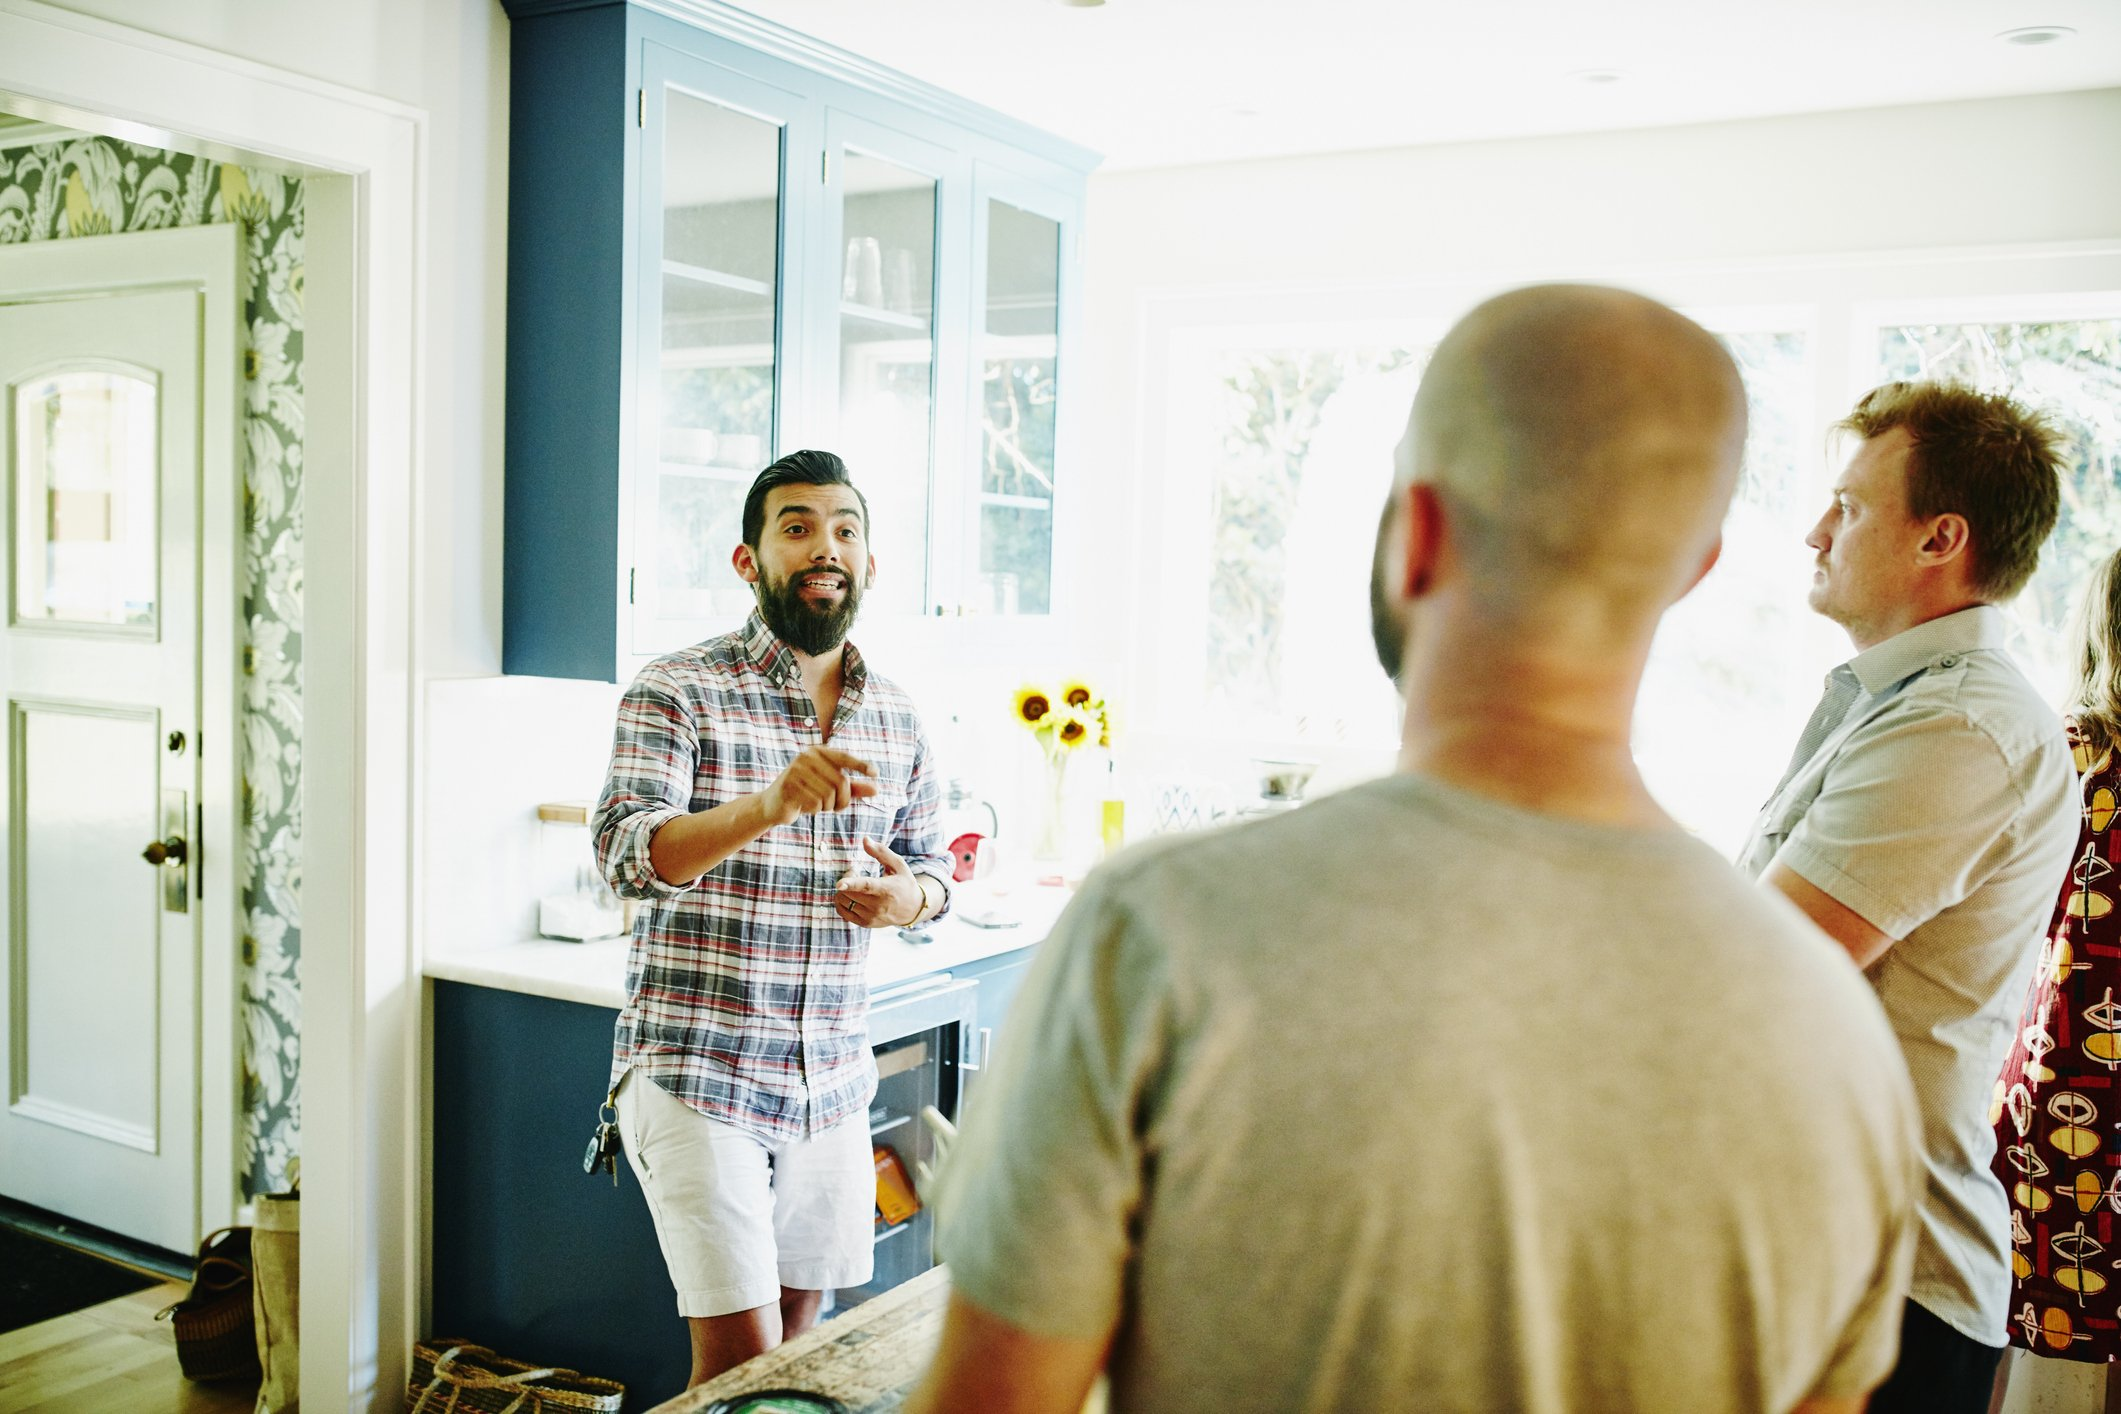 Man in discussion with friends in kitchen  | Photo: Getty Images